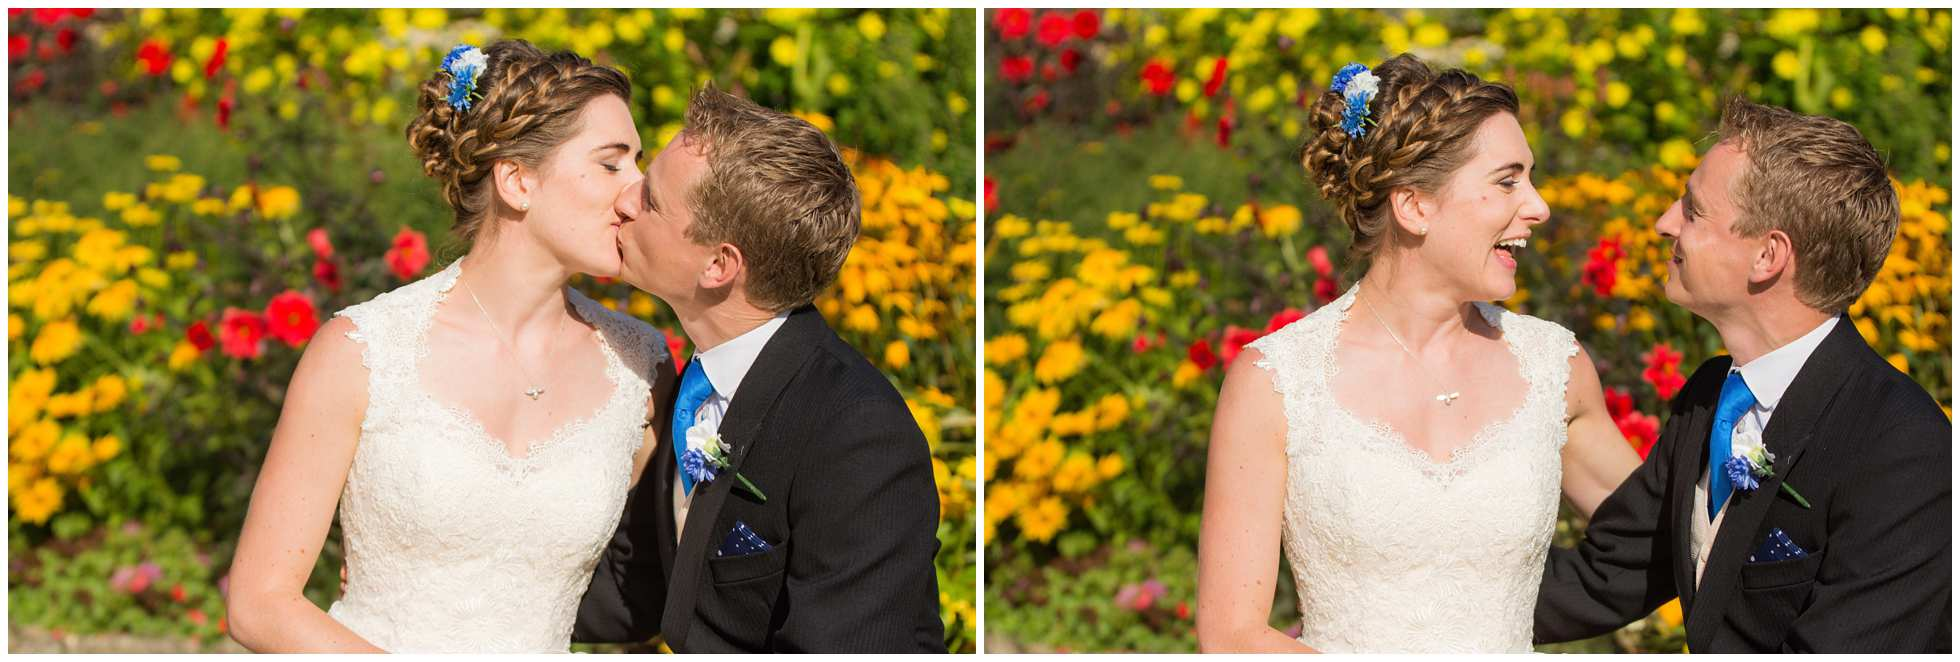 Kissing in the flower beds!